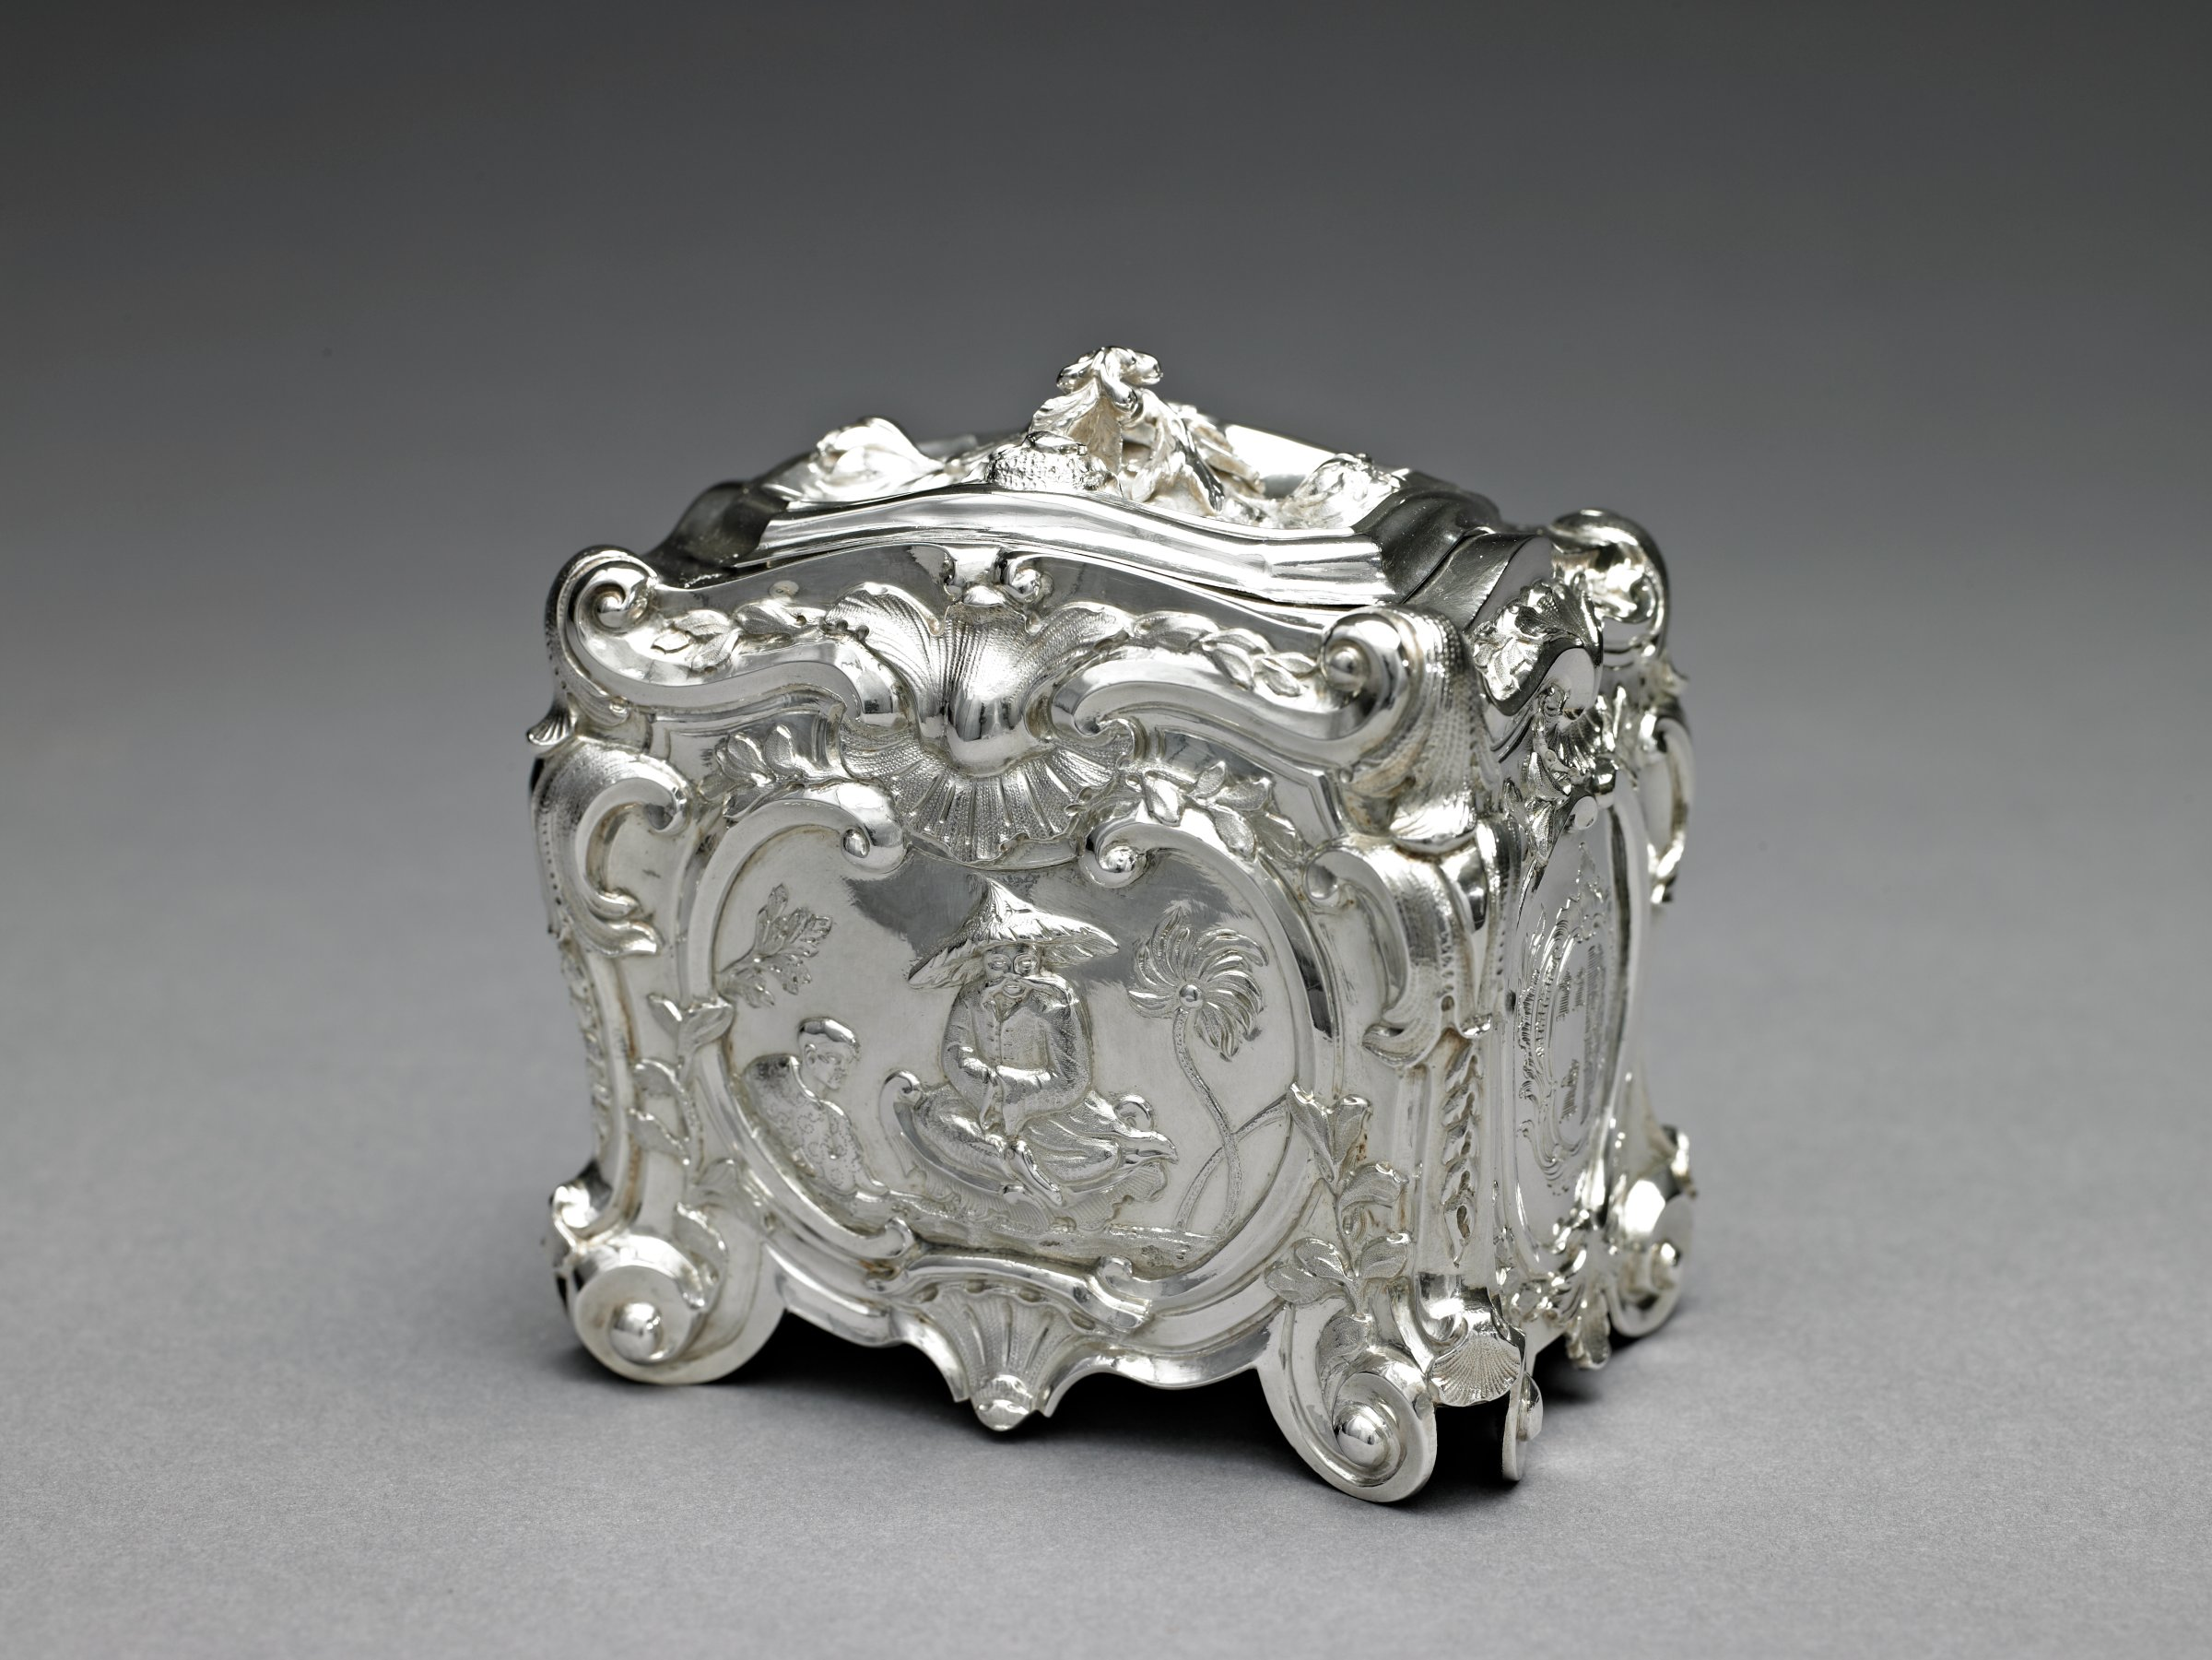 Rectangular tea caddy of heavily carved ivory with silver mounts, the caddy decorated in relief on all sides with images of Chinese figures, exotic scenes, and animals with delicate floral sprays and leaves within a Greek key pattern border, with engraved silver escutcheon and hinges, four silver claw feet, and silver pineapple finial, the interior lined with wood covered with red velvet; the pair of tea canisters of heavily and elaborately chased silver in the Chinoiserie style, rectangular with slightly contoured sides and decorated with scrolls, shell, and leafy motifs, on the sides within a reserve 1) the figure of a seated Chinese figure in robe and hat, sitting on a cushion with palm trees and a second seated figure on the left; and 2) a standing Chinese figure in robe and hat with an architectural structure in the background and exotic trees, with a second standing figure on the right holding a flag or pennant; at both ends an engraved coat-of-arms, the covers with truncated edges and an elaborate finial comprised of flowers, ribbons, and leaves.